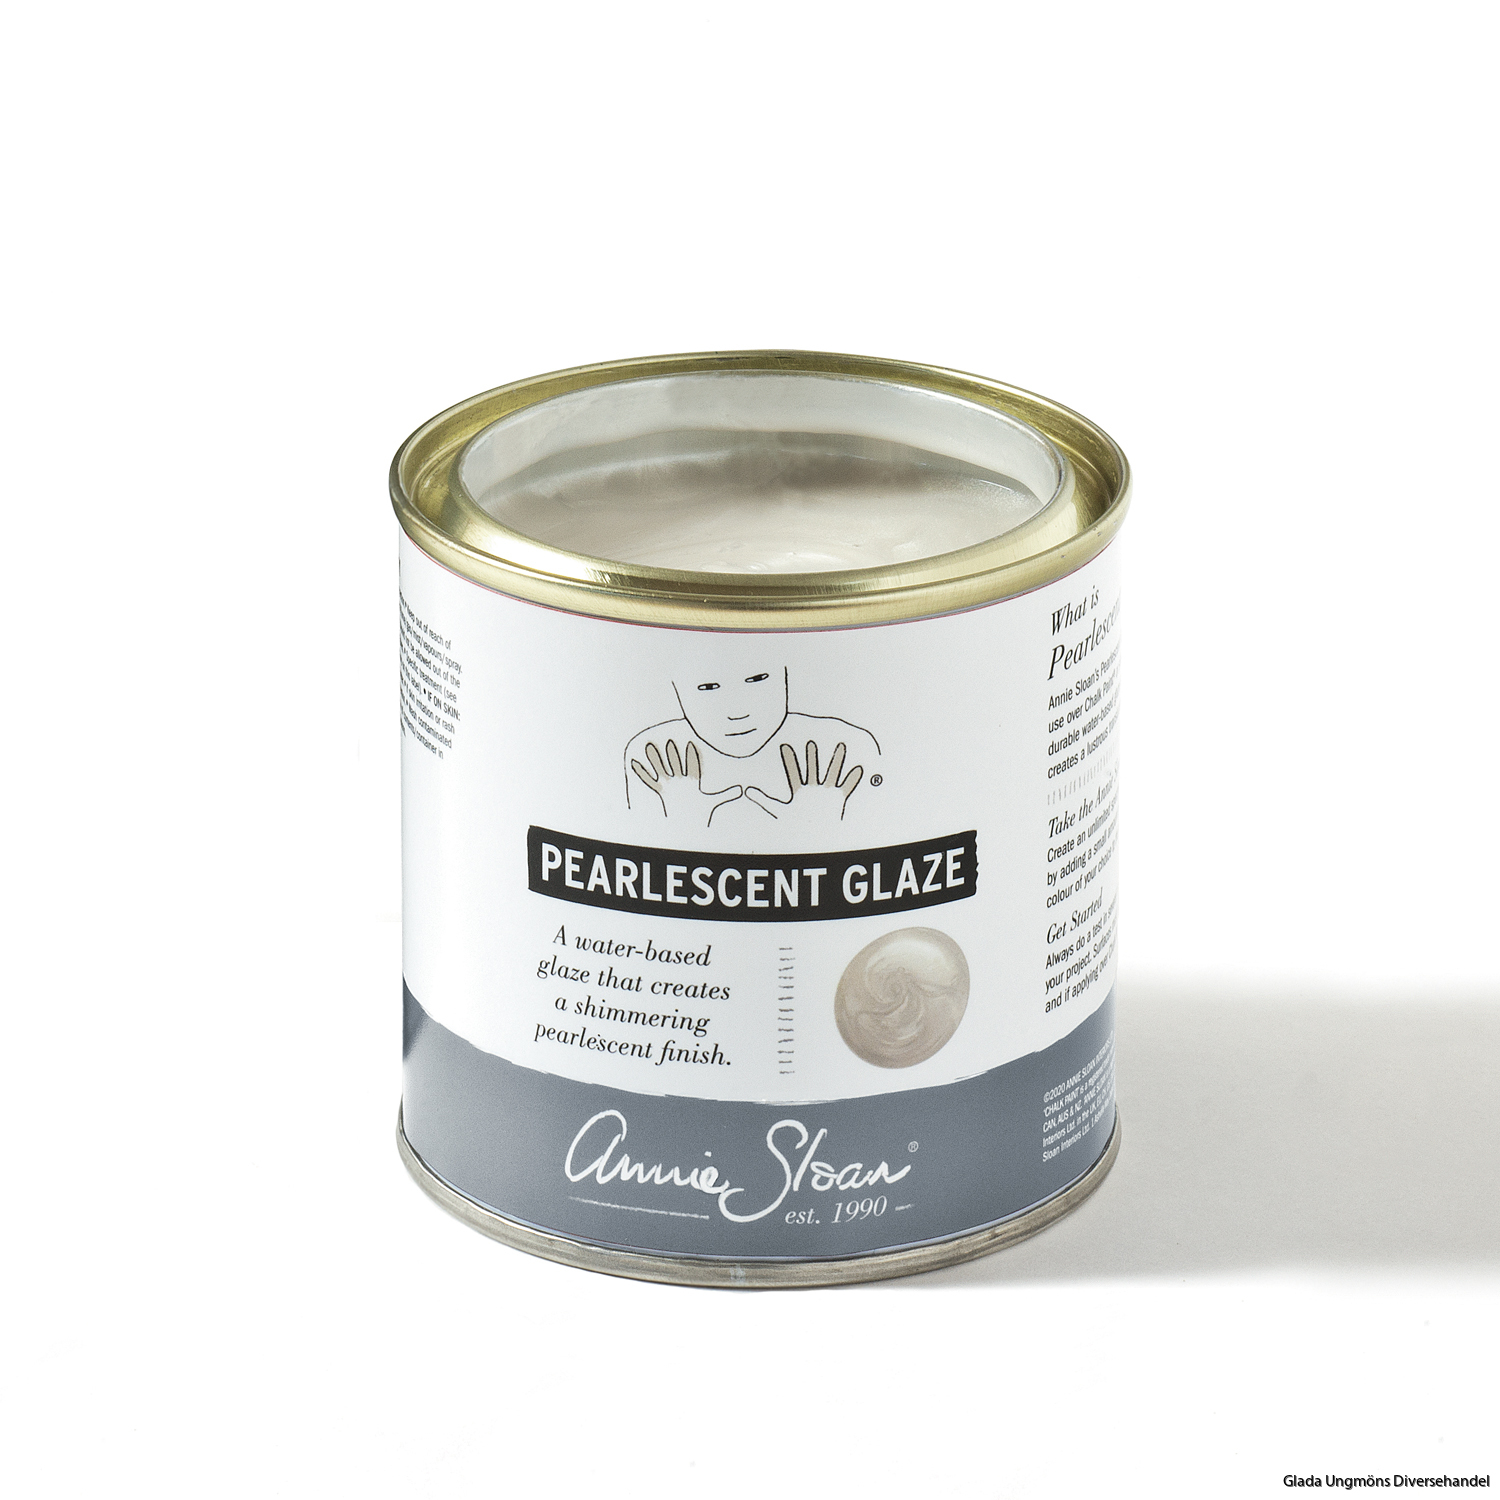 Pearlescent-Glaze-250ml-tin-lid-off